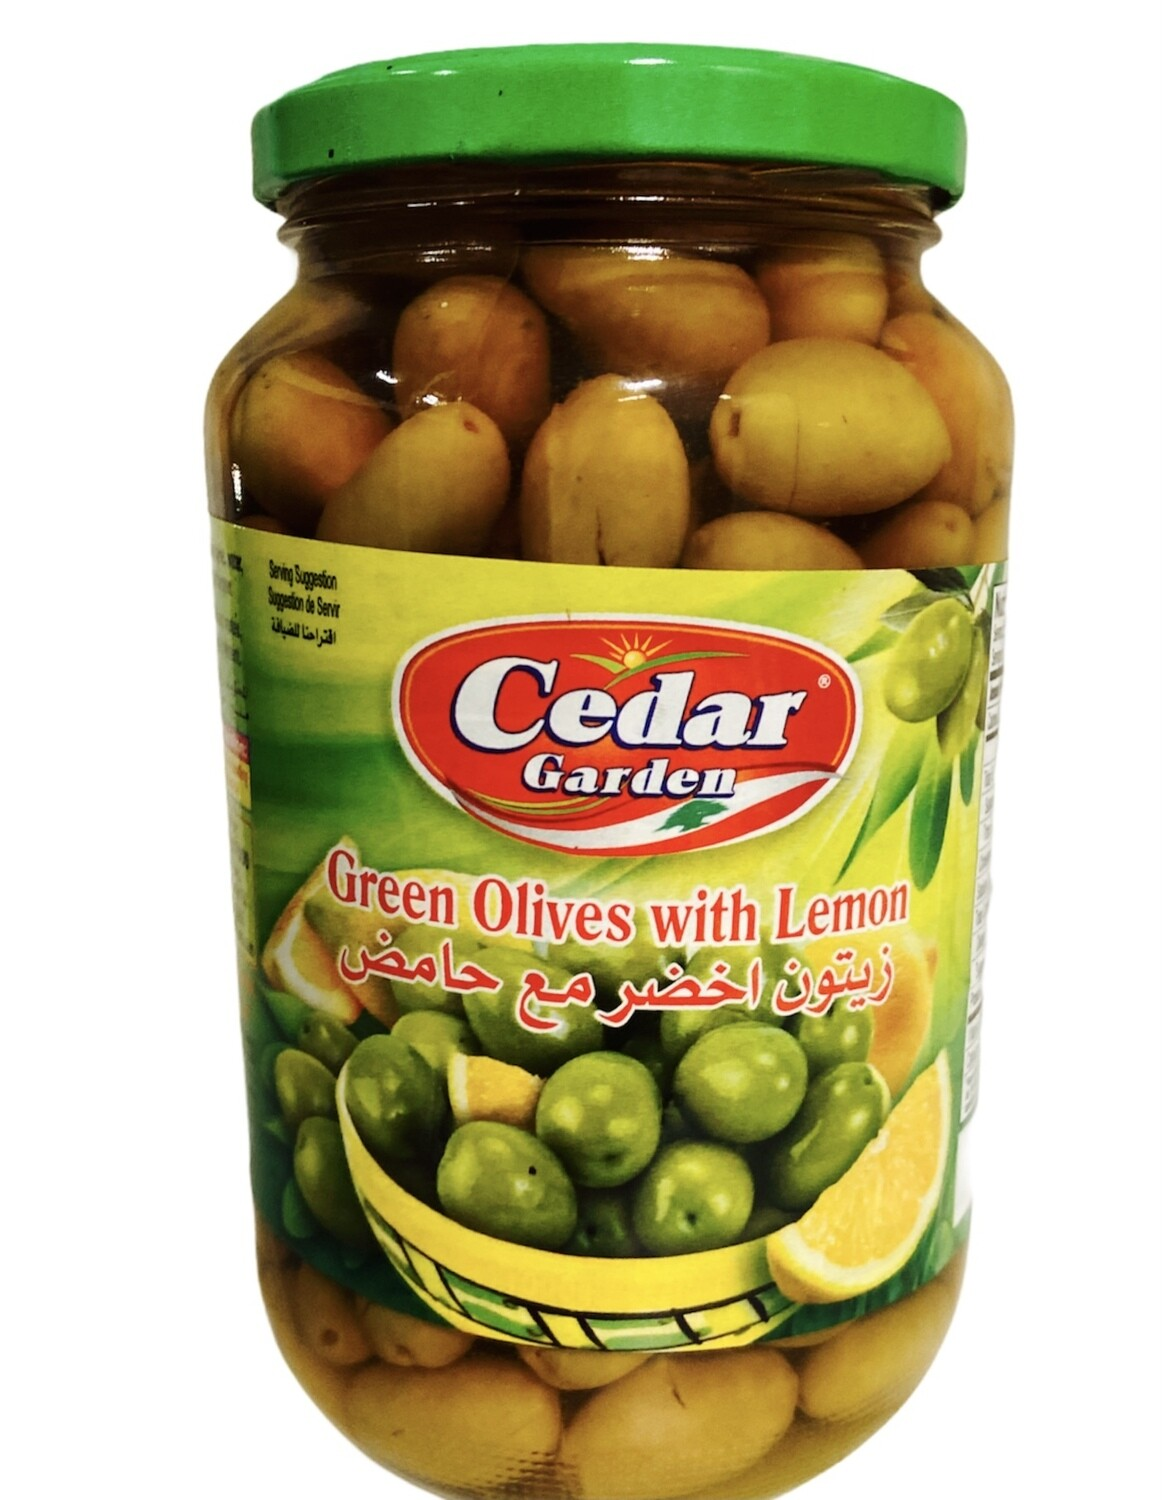 Cedar Garden Green Olives With Lemon 12x900g